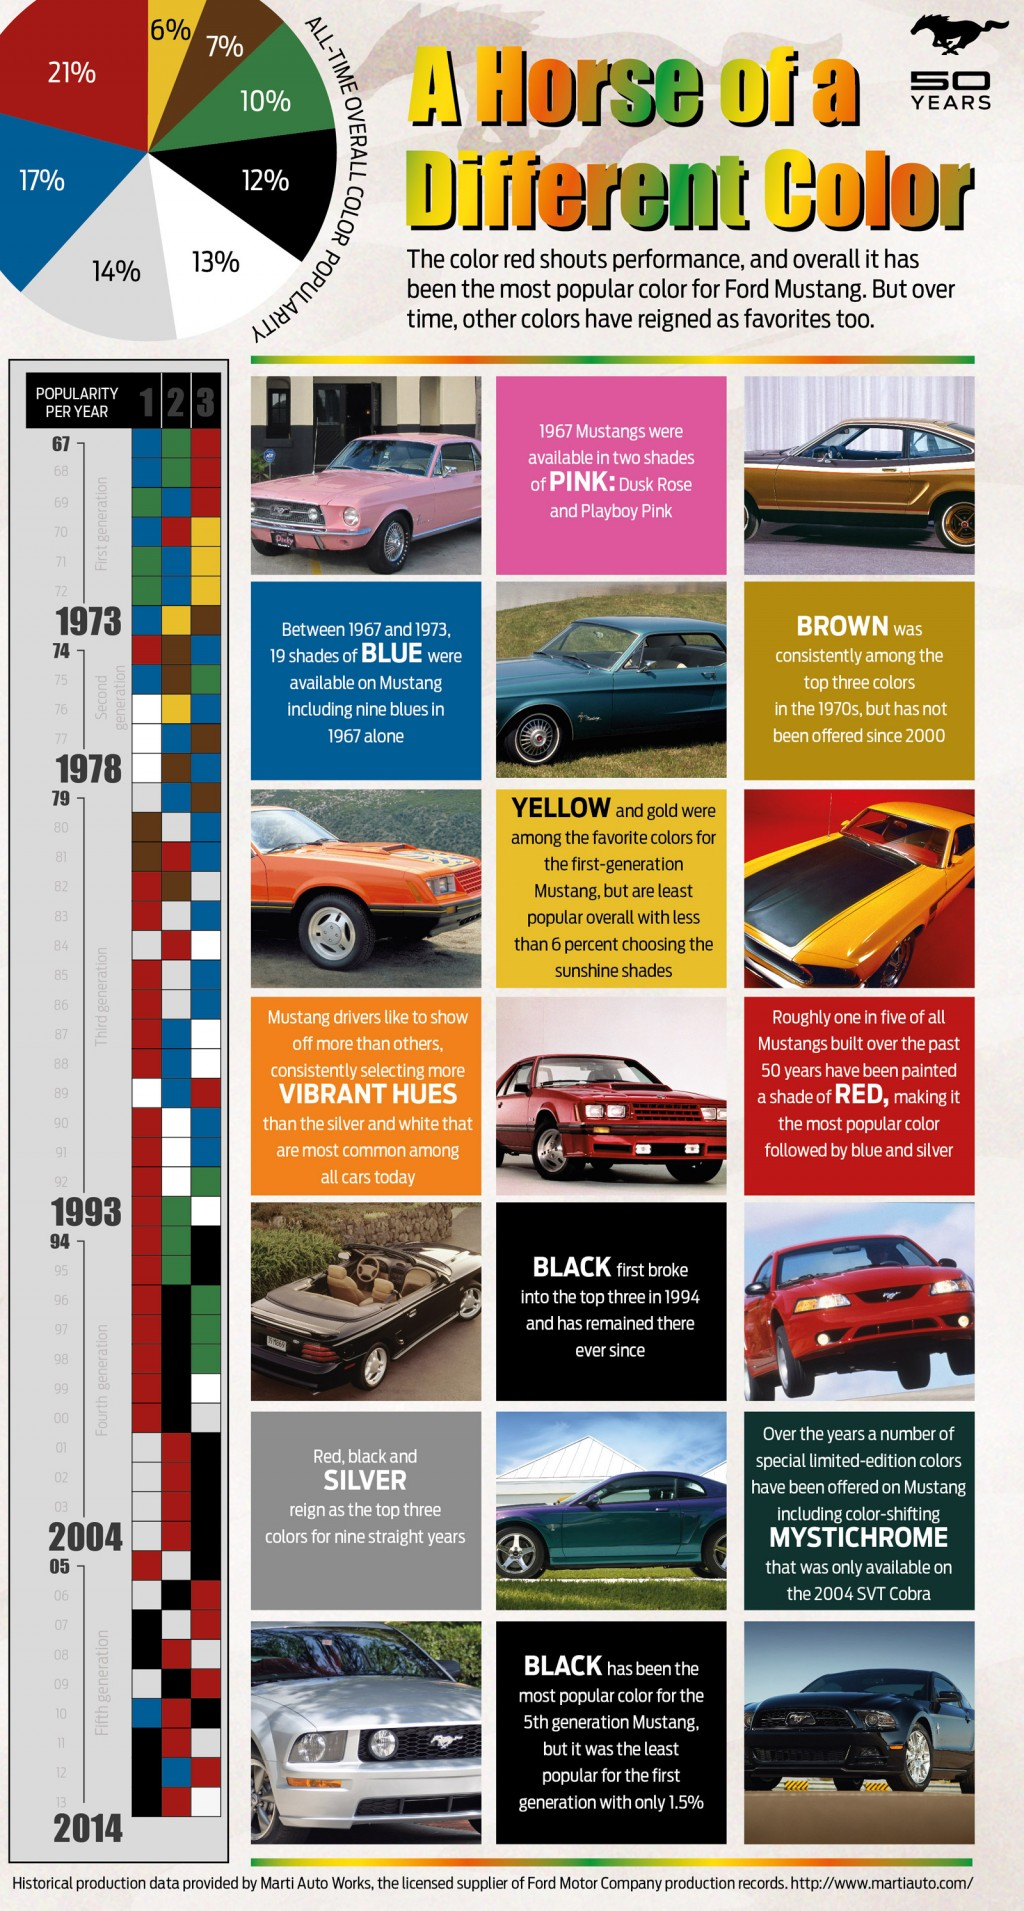 Ford Mustang colors throughout the years